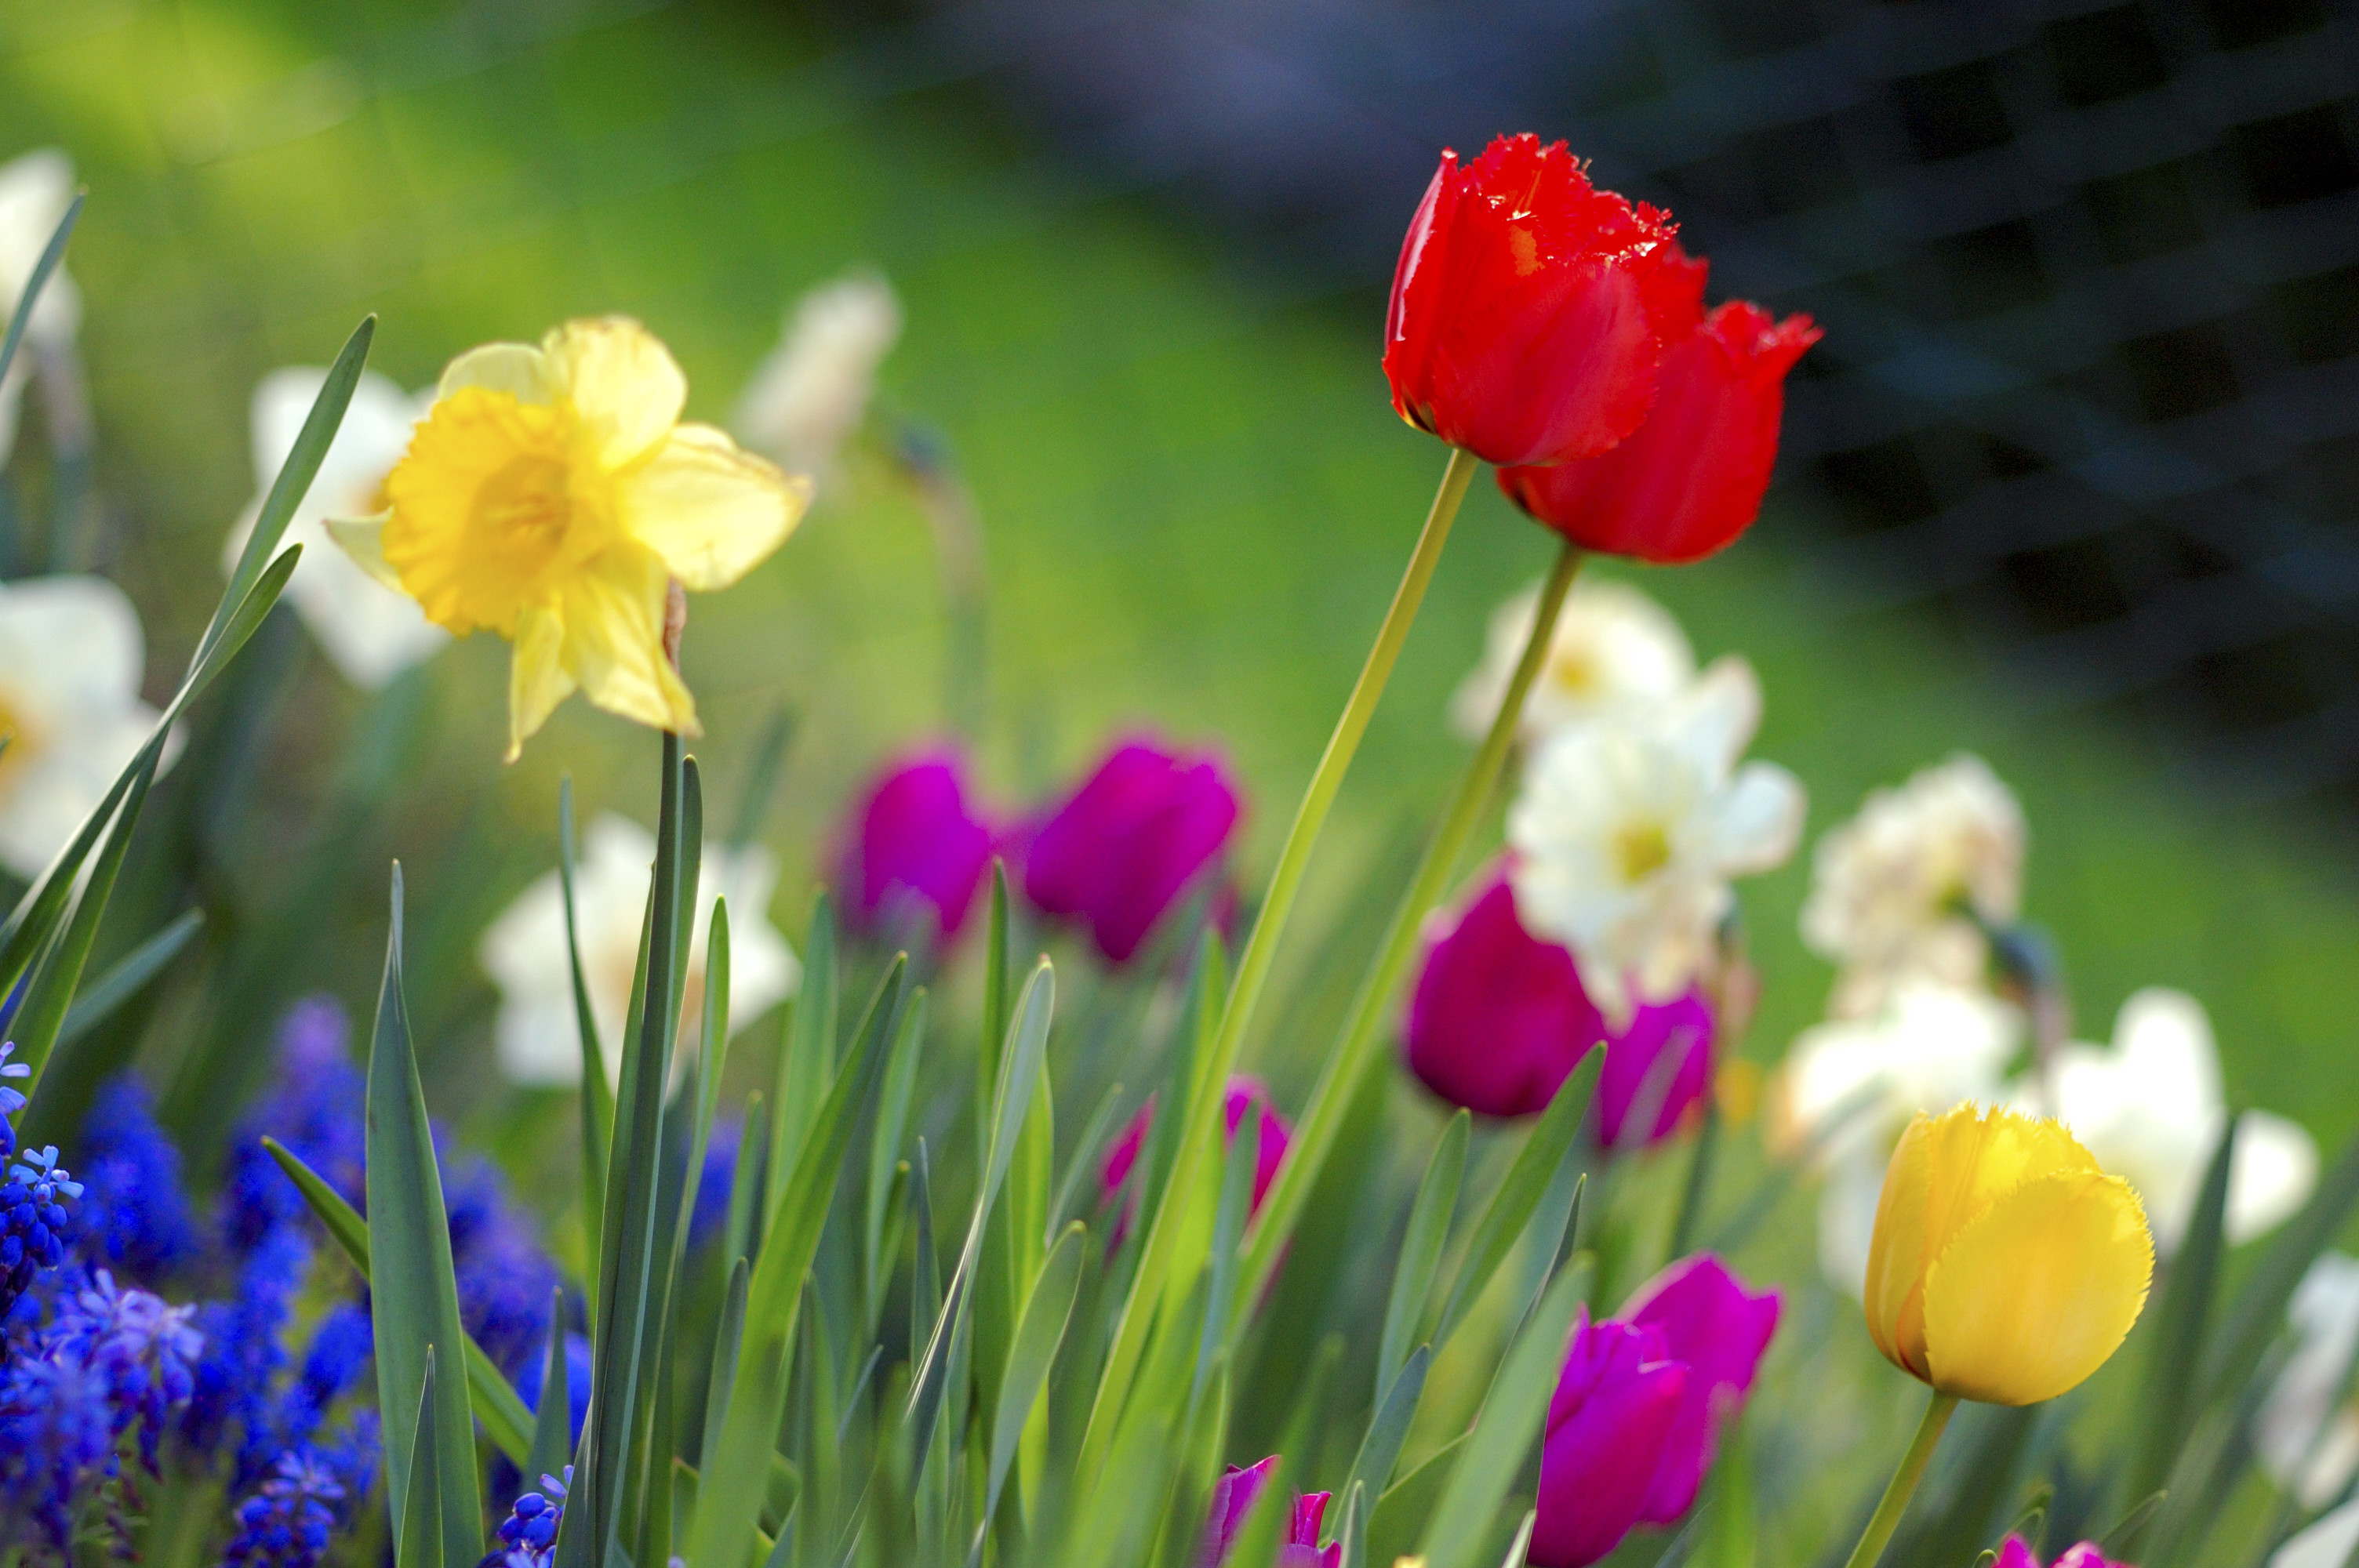 Colourful Spring Garden picture